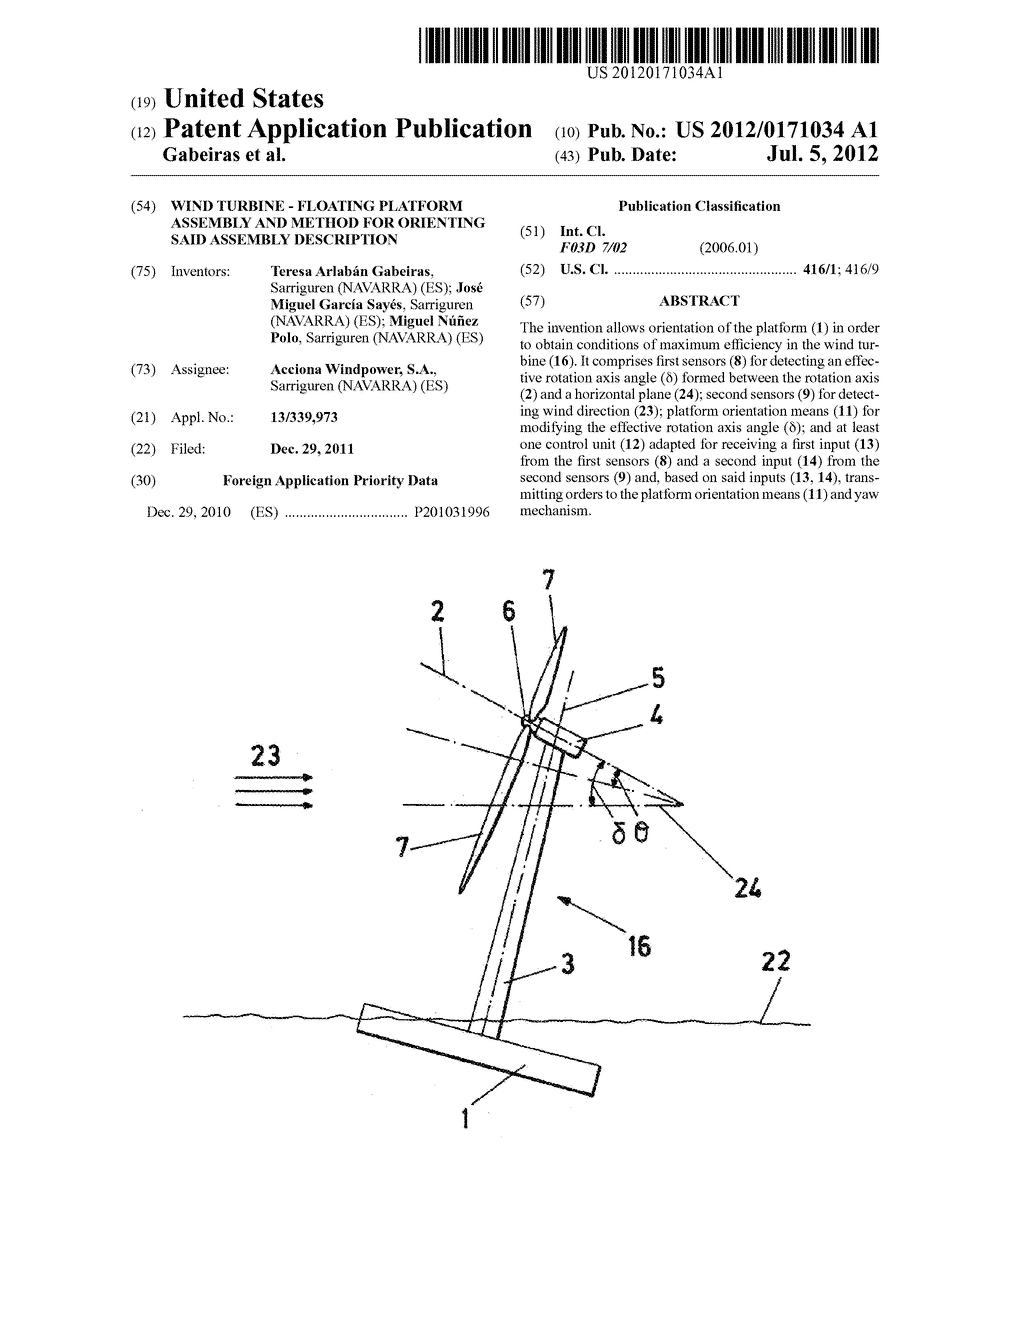 WIND TURBINE - FLOATING PLATFORM ASSEMBLY AND METHOD FOR ORIENTING SAID     ASSEMBLY DESCRIPTION - diagram, schematic, and image 01